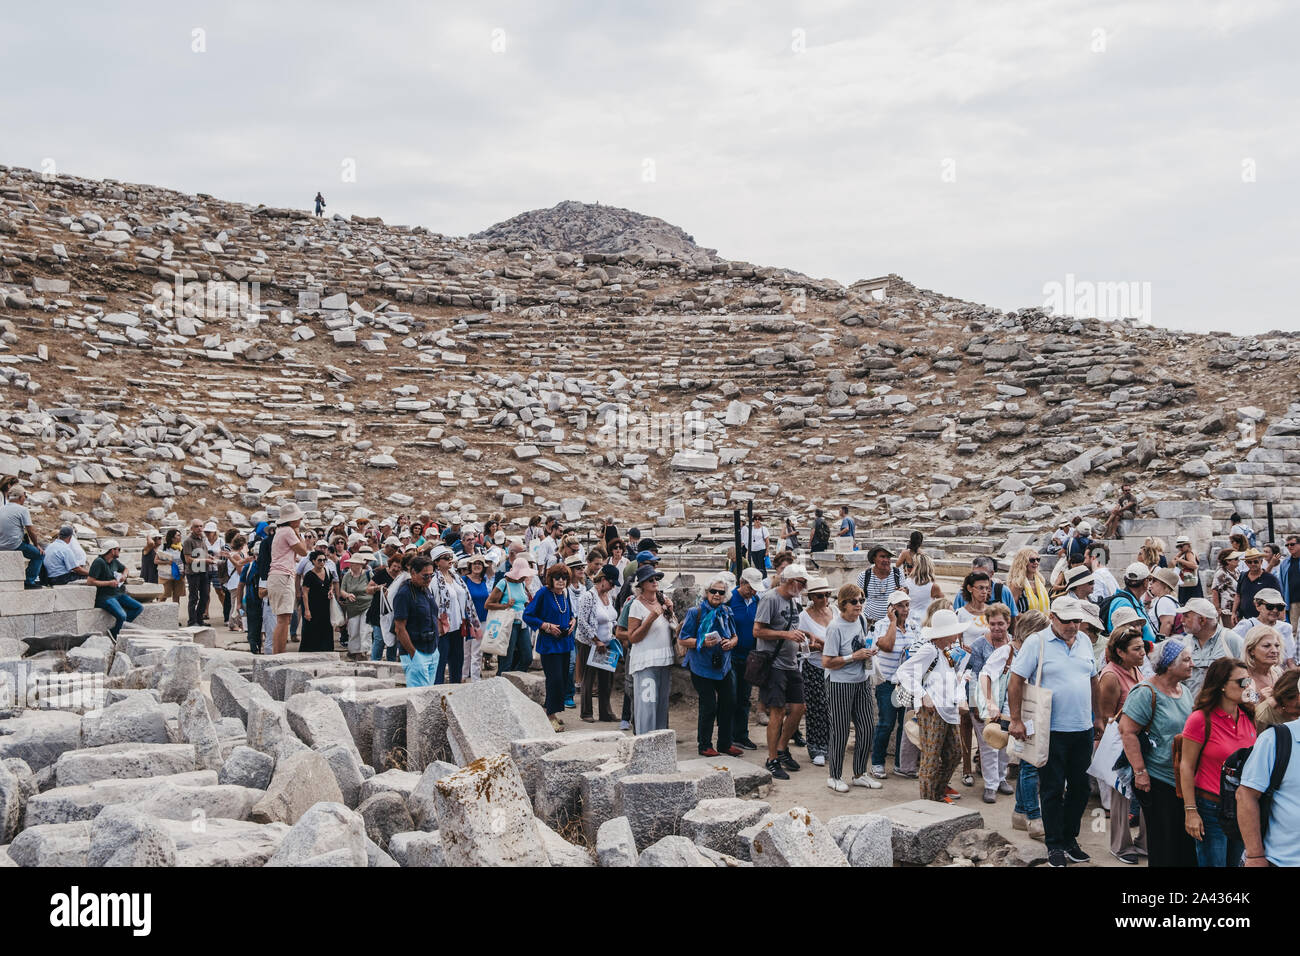 Delos, Greece - September 20, 2019: Large number of tourists leaving after performance at the ancient theatre on the Greek island of Delos, an archaeo Stock Photo